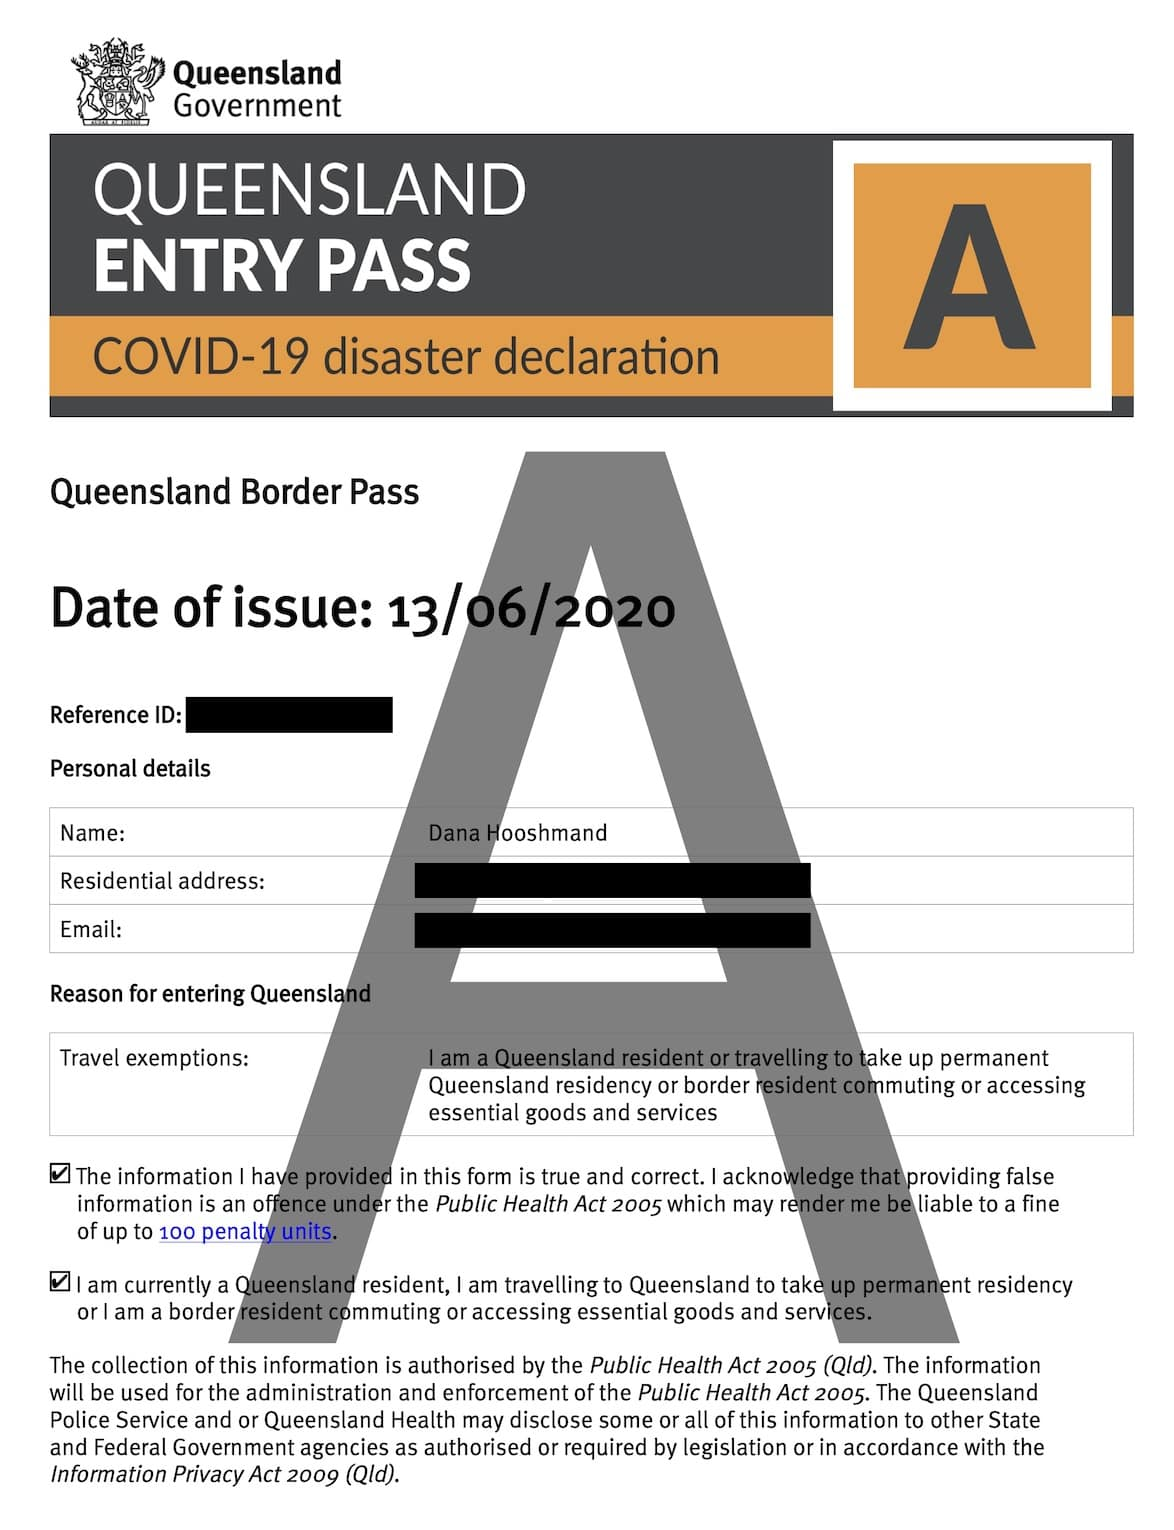 Queensland entry pass under COVID